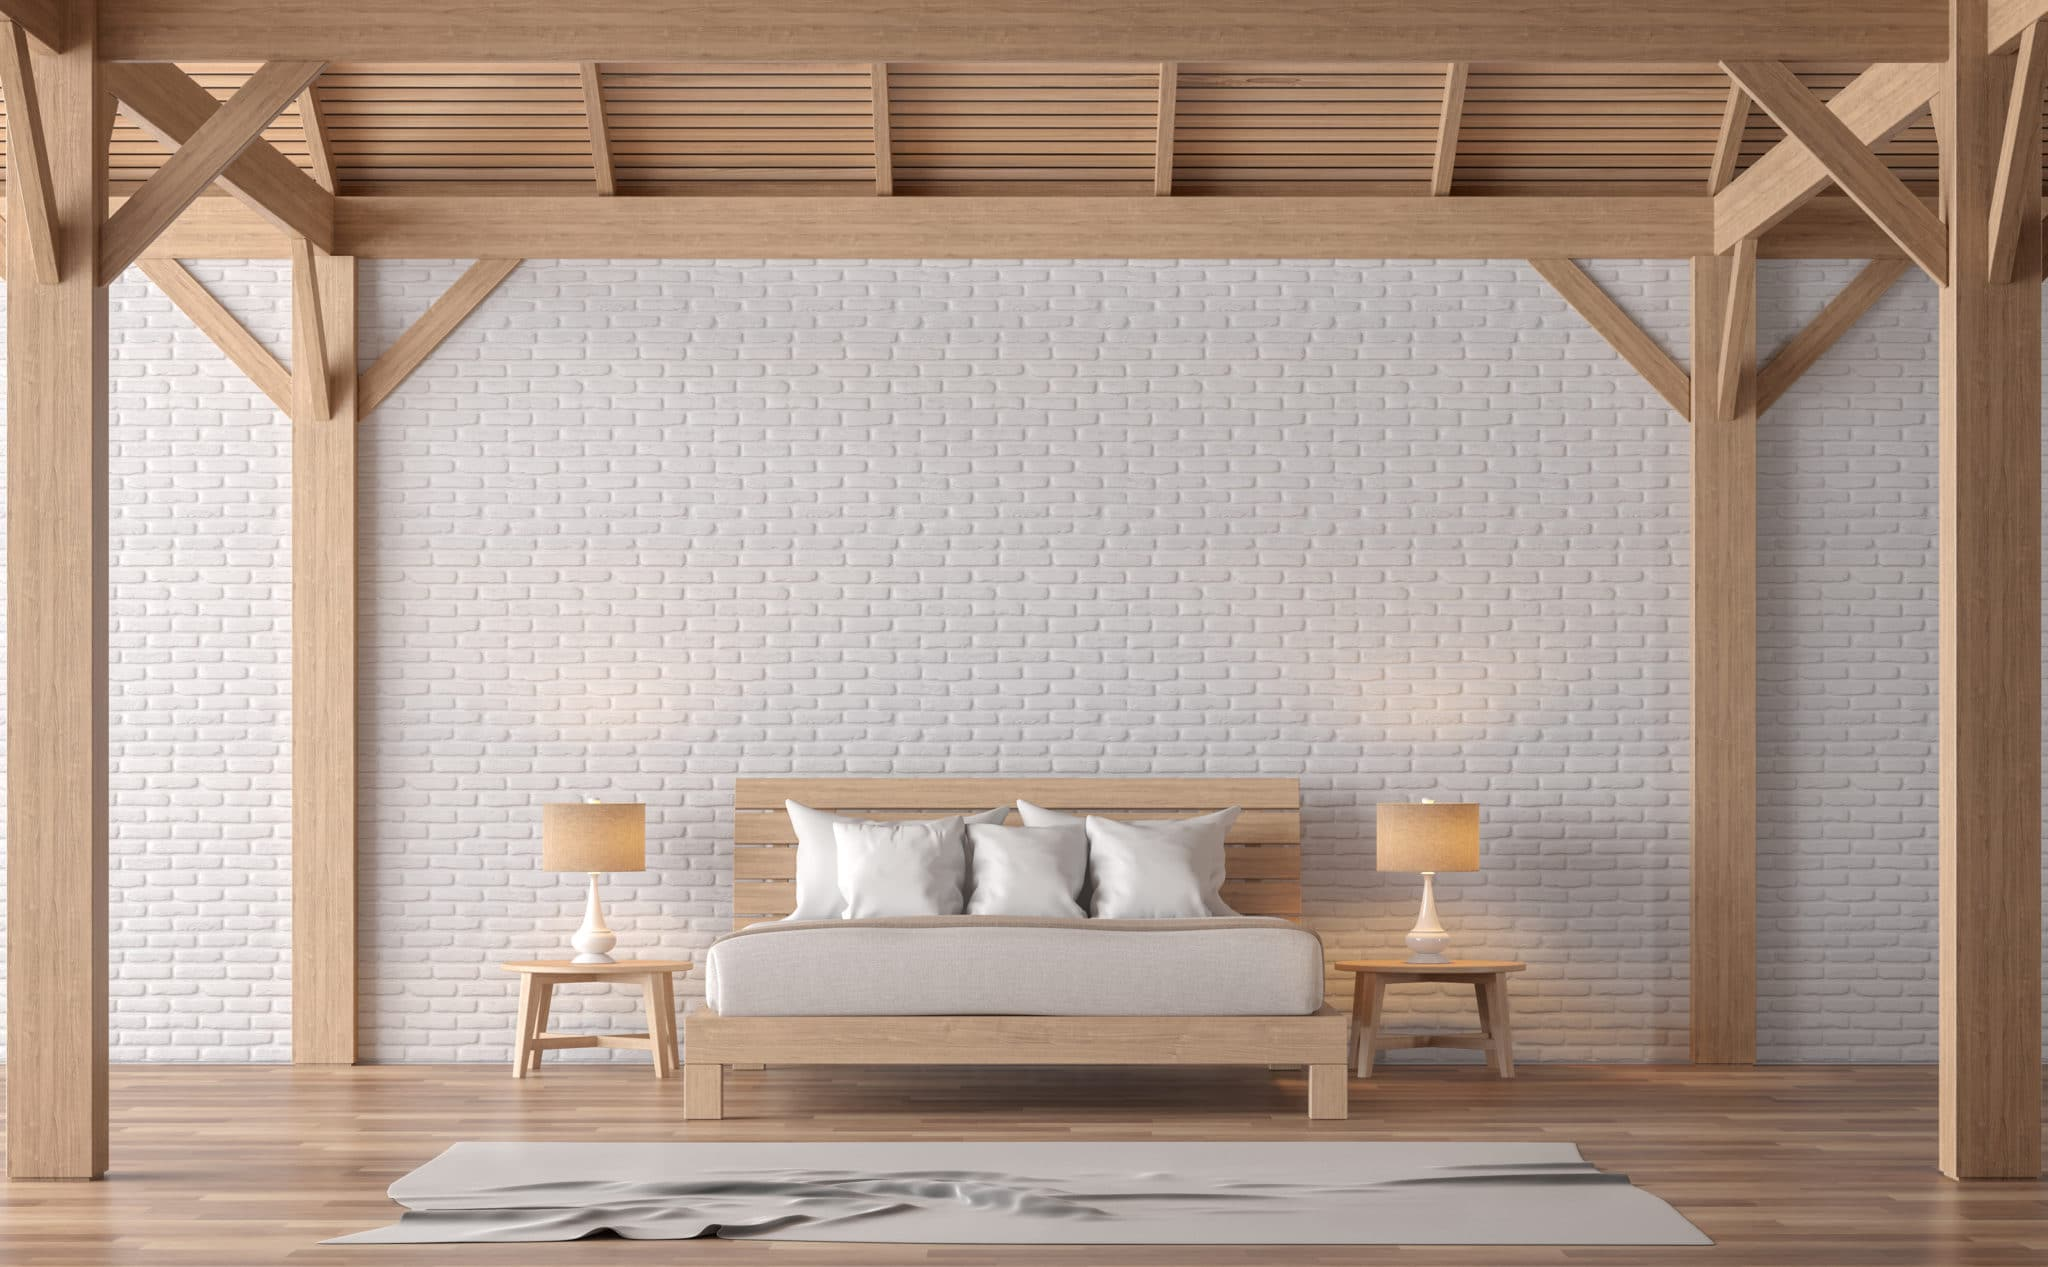 Loft style bedroom 3d rendering image.There are white brick wall,wood floor and wood structure.Furnished with wooden bed